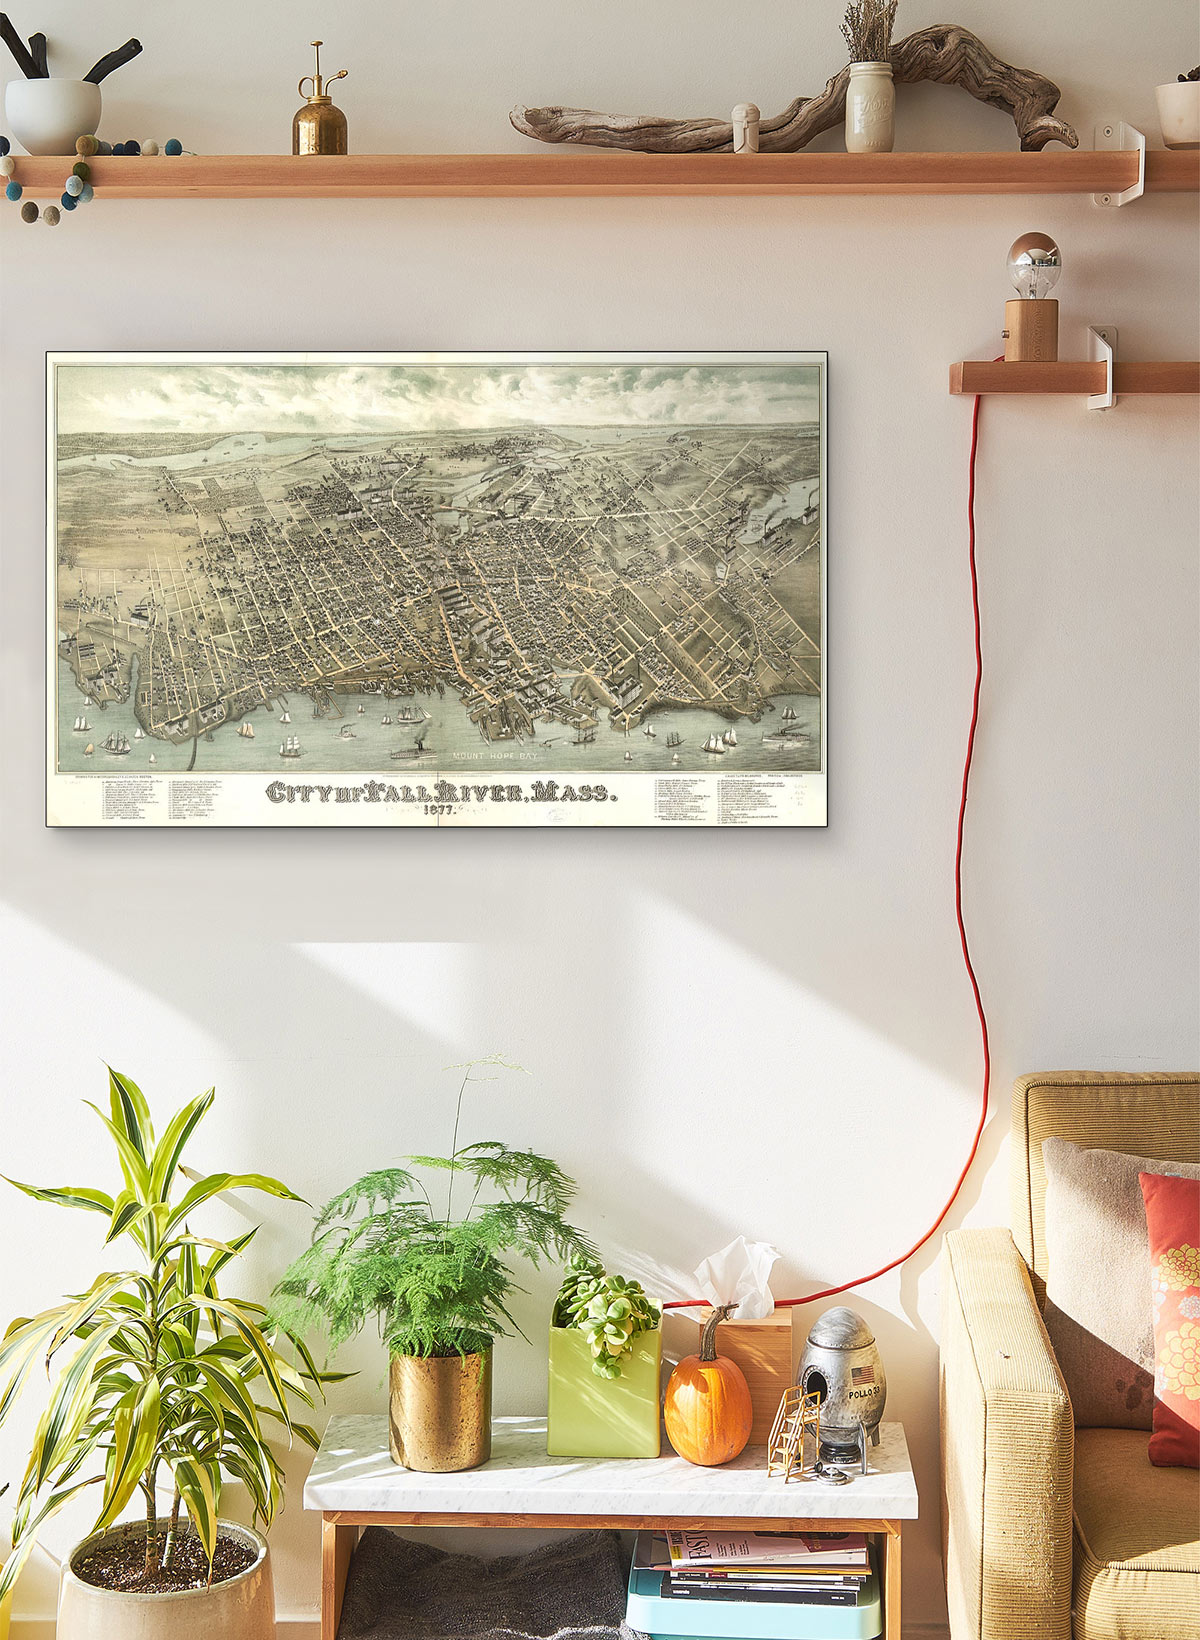 City Of Fall River Mass 1877 LARGE Vintage Map